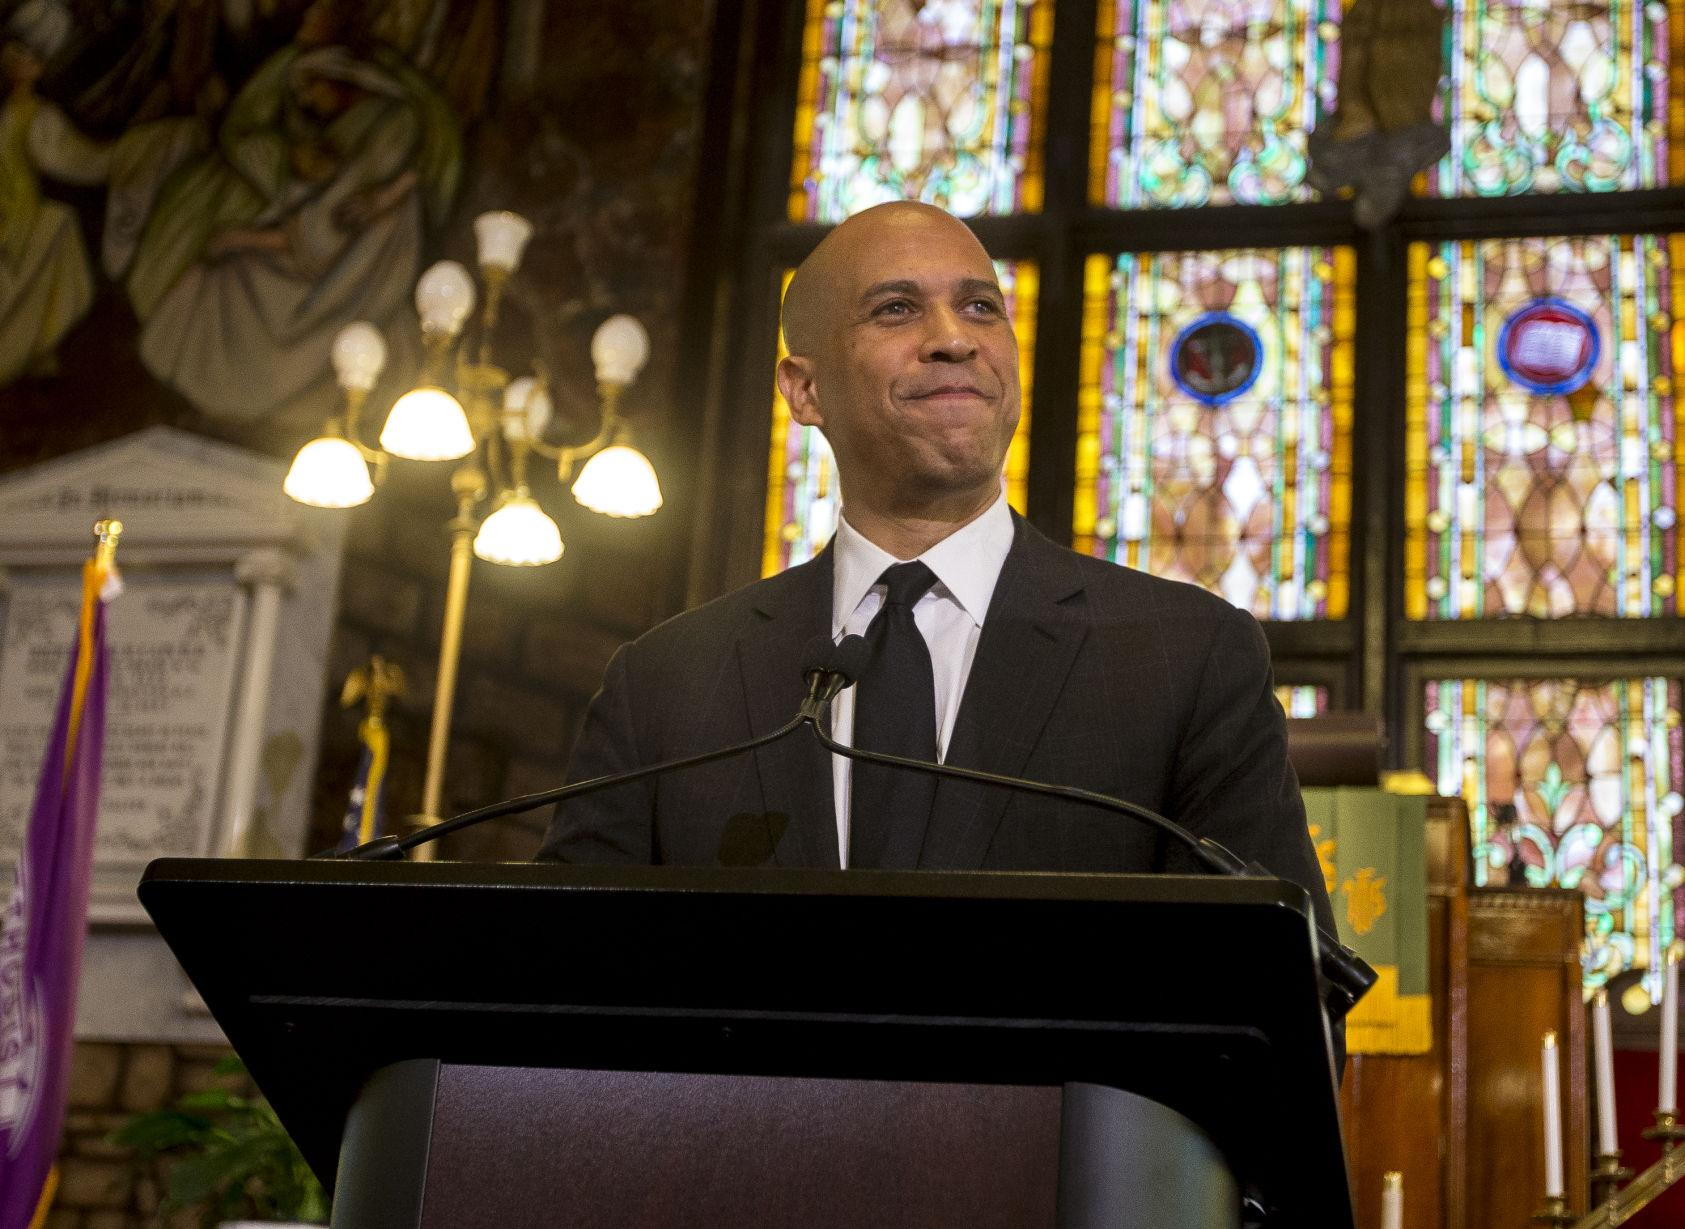 POST AND COURIER – Cory Booker to take part in Post and Courier 'Pints and Politics' on Friday